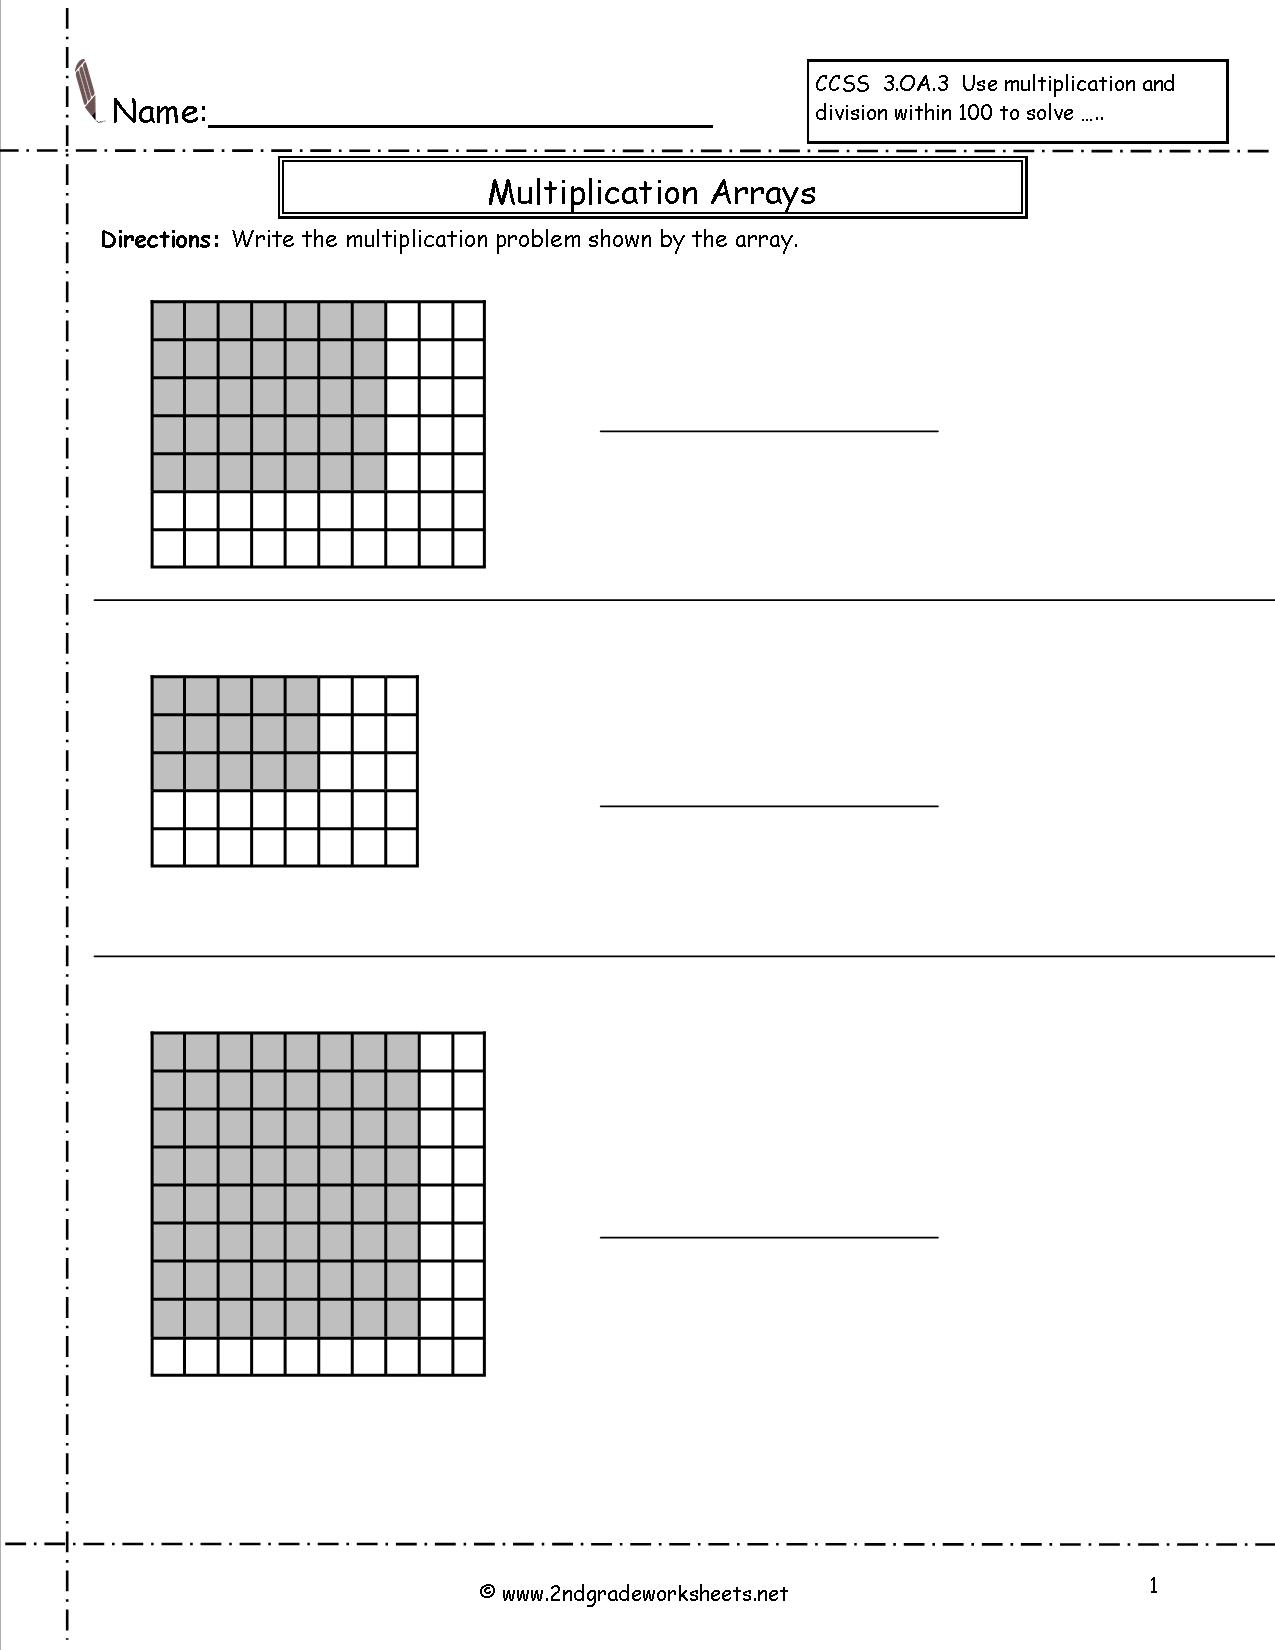 Multiplication Arrays Worksheets inside Worksheets Multiplication Arrays